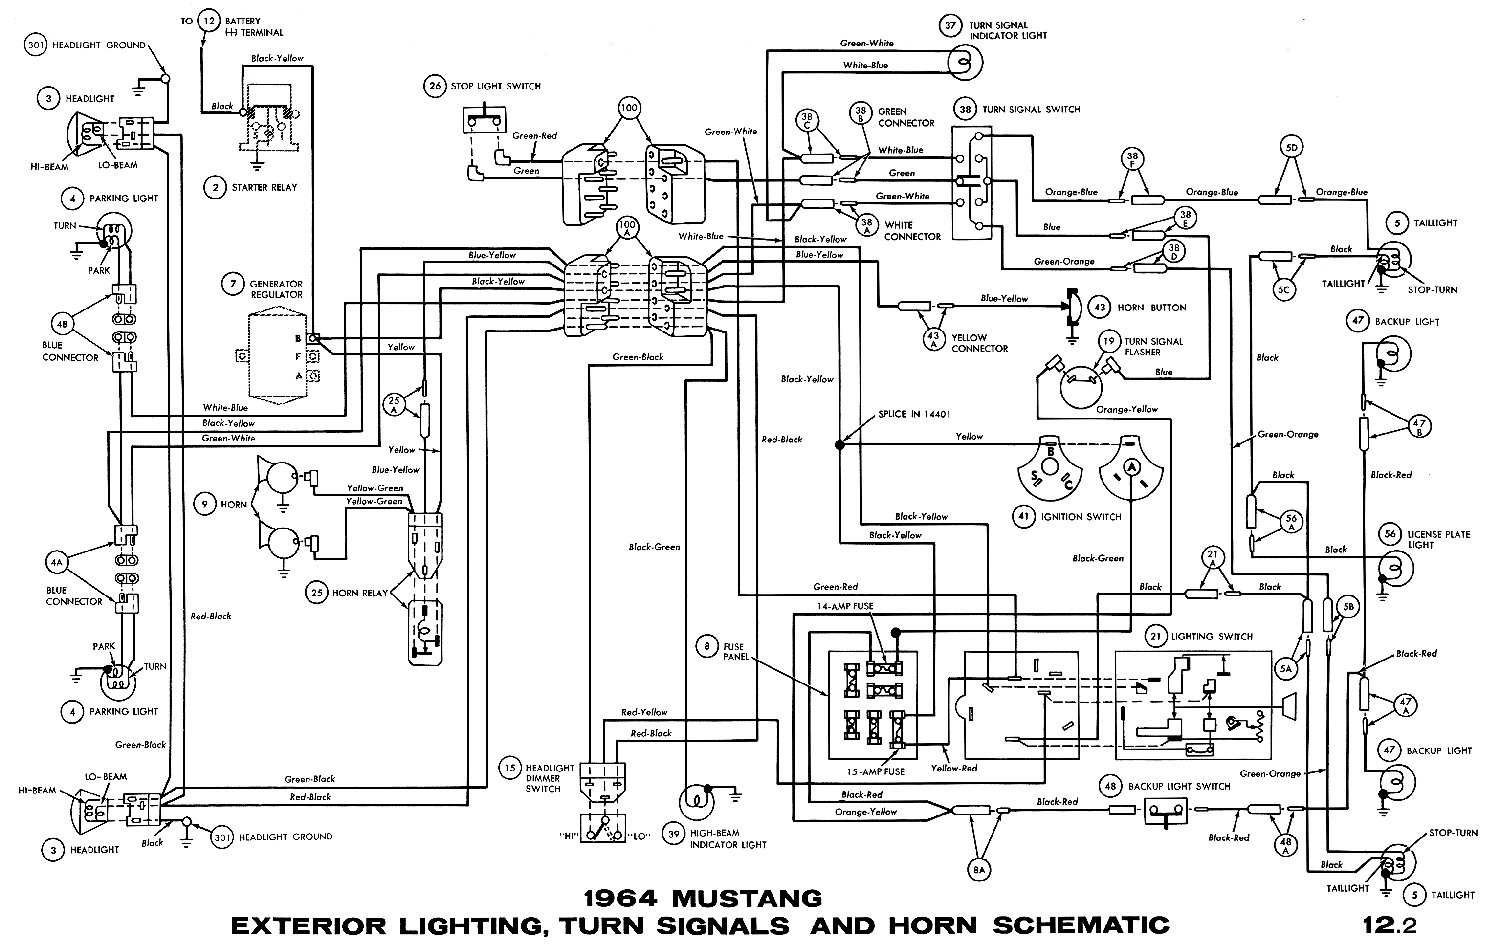 hight resolution of 1969 ford mustang wiring diagram wiring diagram blogs 1989 mustang wiring harness diagram 1969 mustang wiring harness diagram